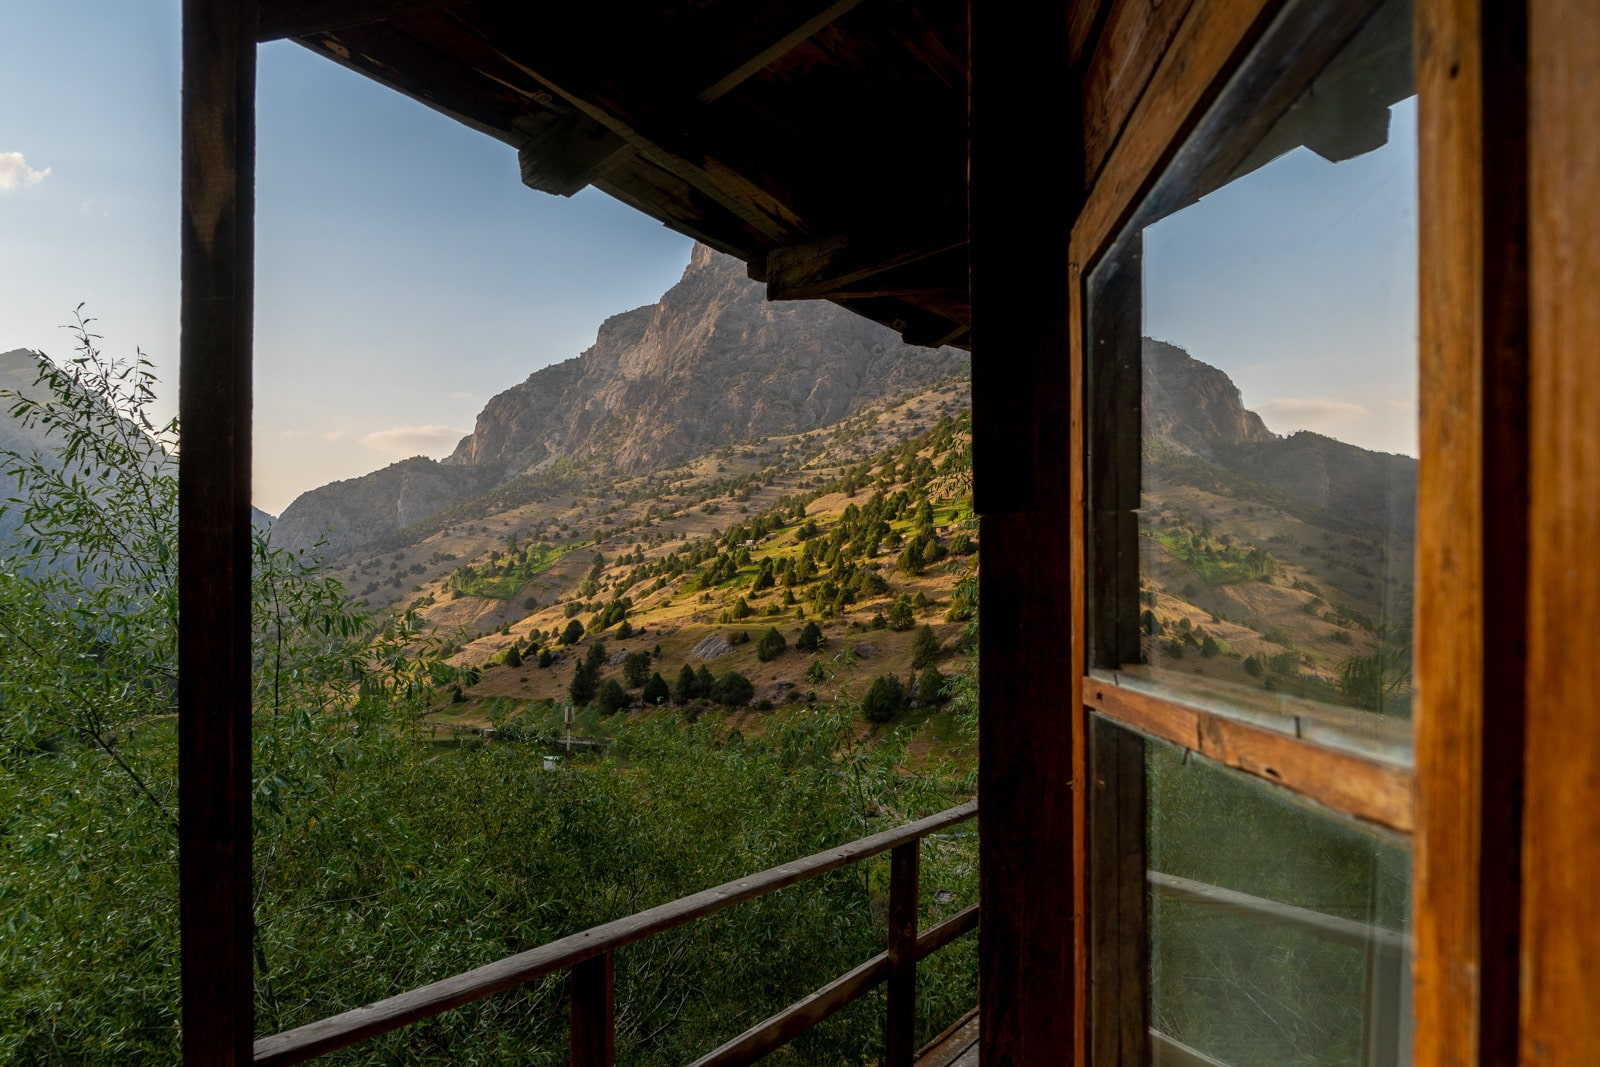 Sunset view from Artuch Camp Alplager in Tajikistan's Fann Mountains